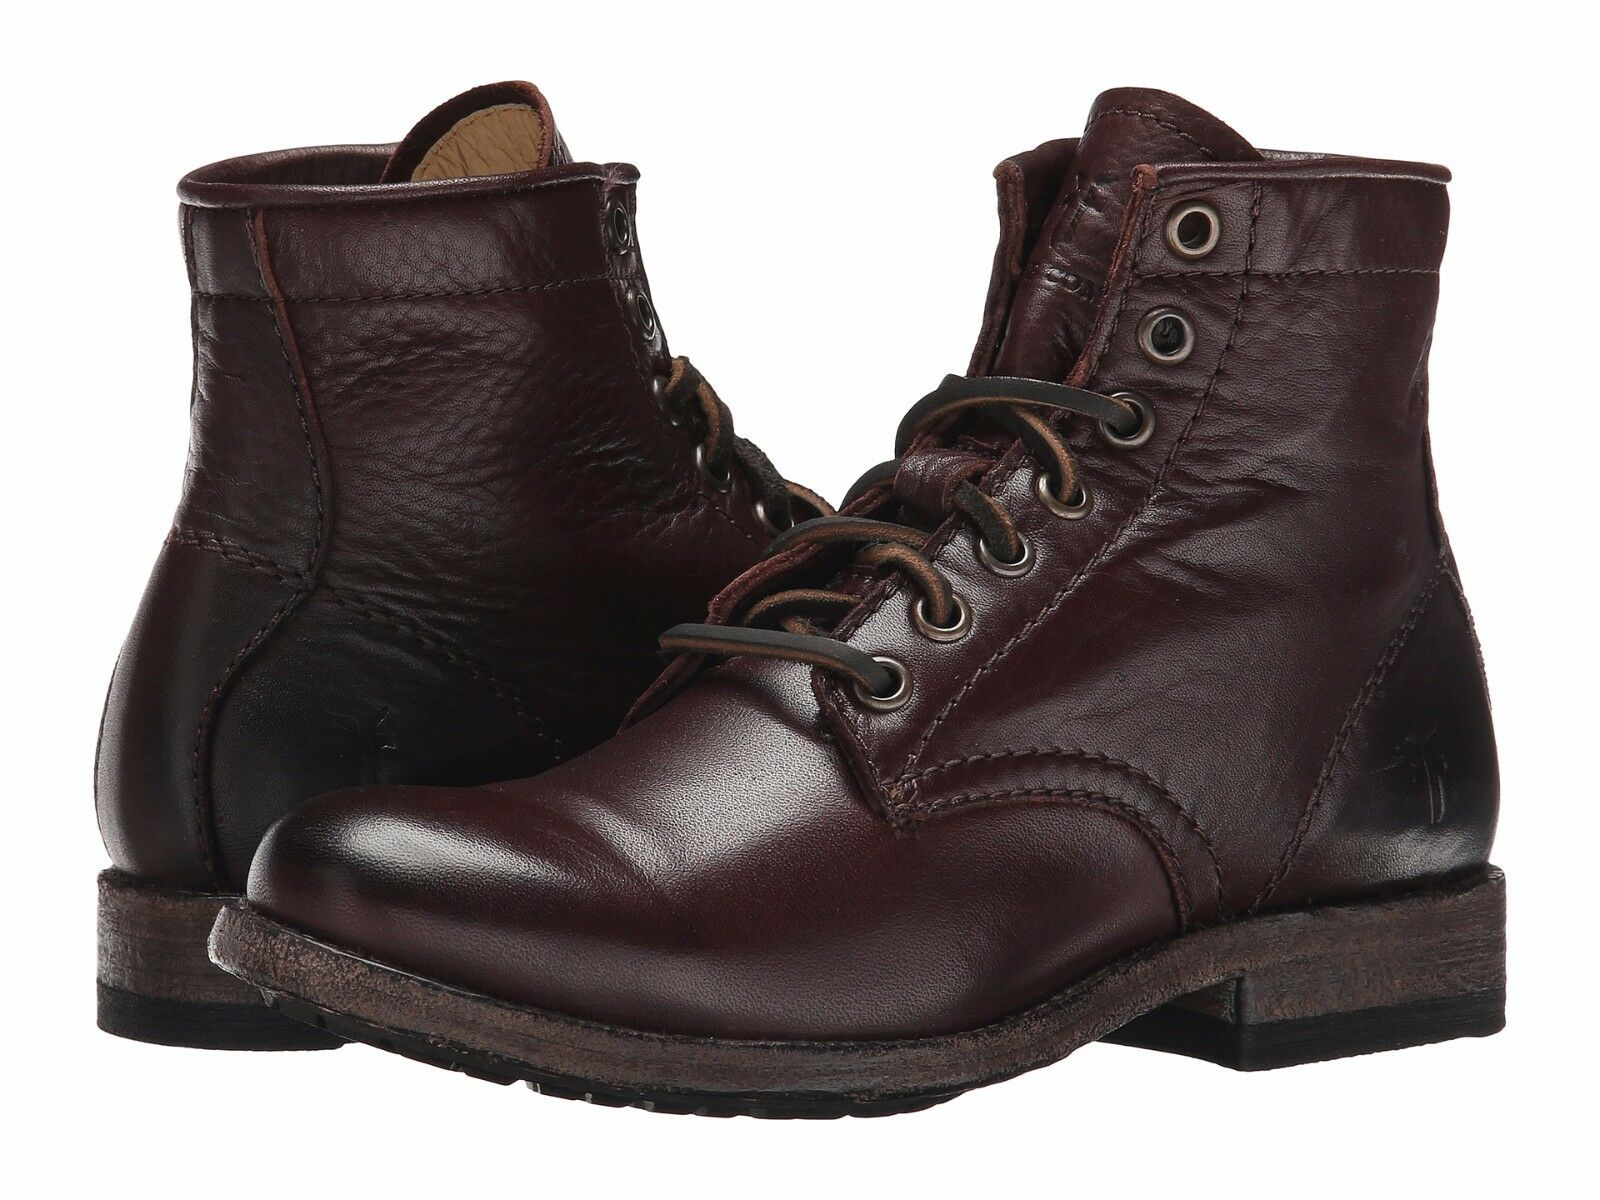 Women's Frye Boots Tyler Lace Up Boot Dark Brown Leather 74873 DBN